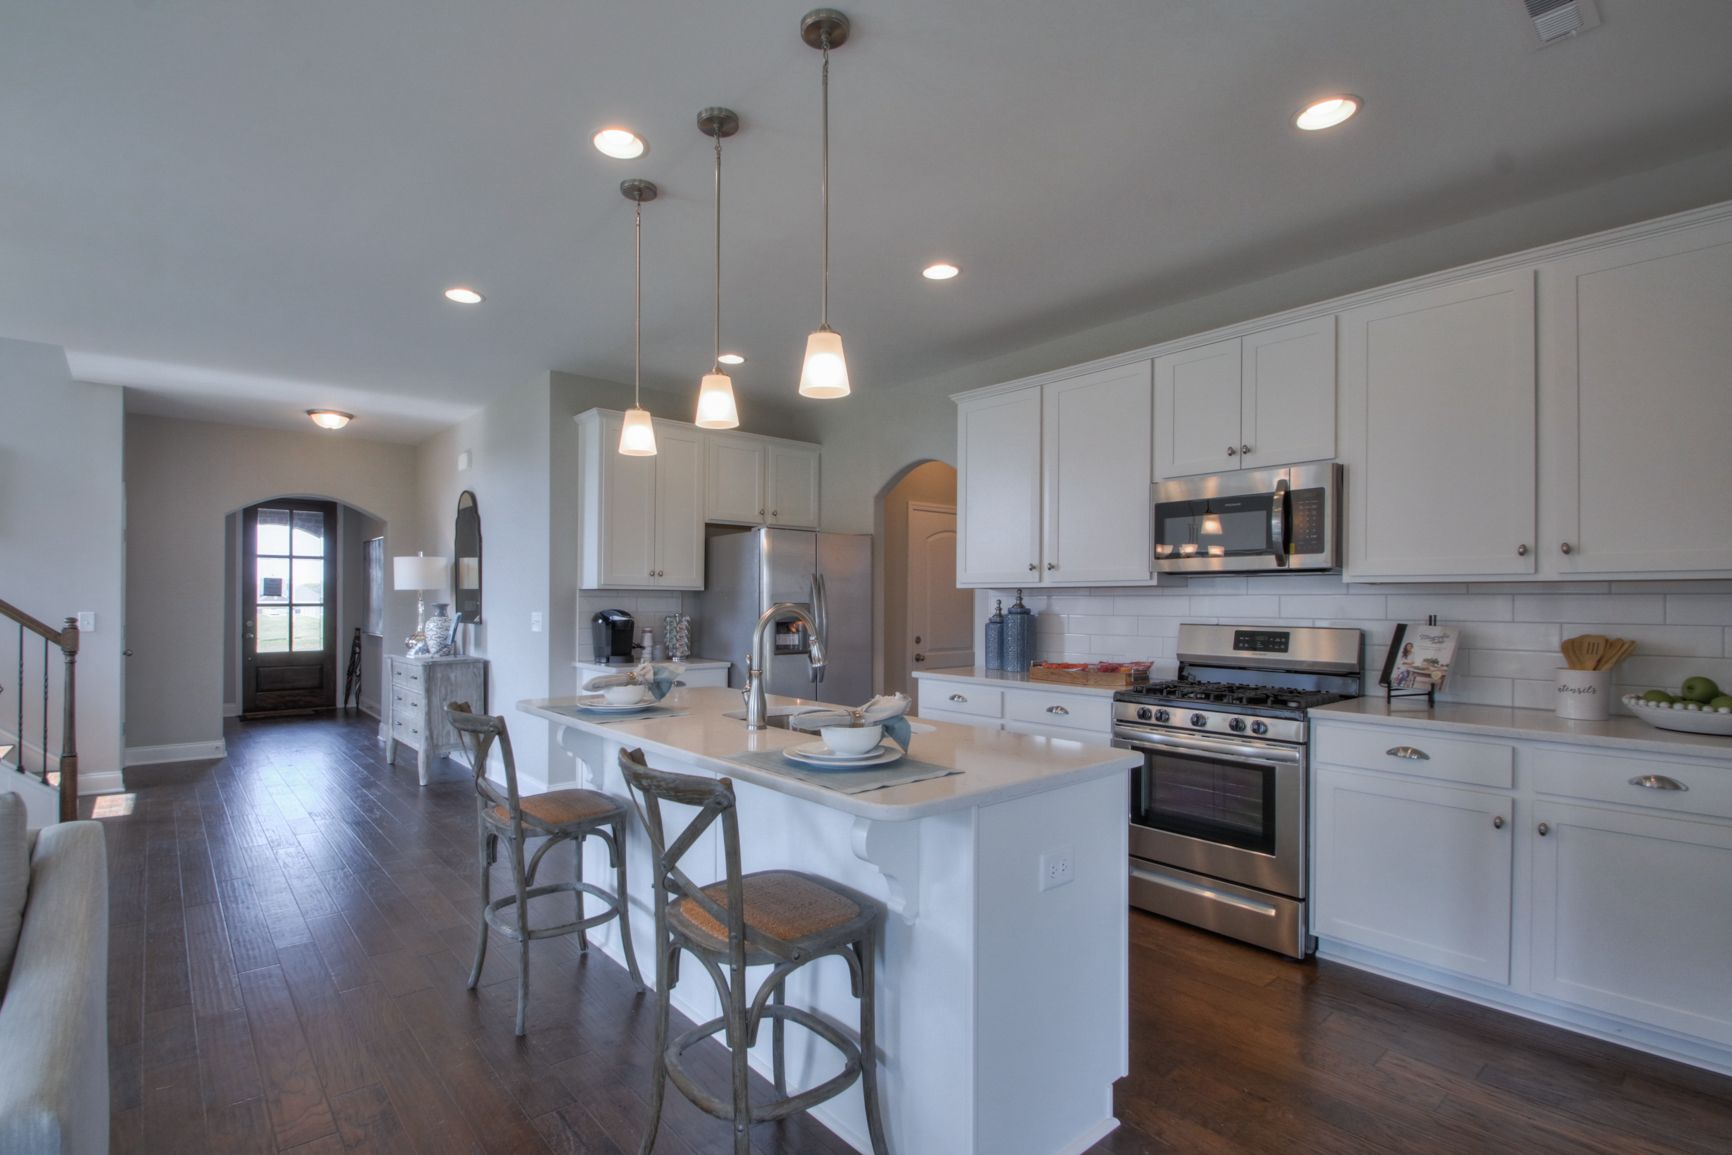 Kitchen featured in The Harding By Goodall Homes in Knoxville, TN